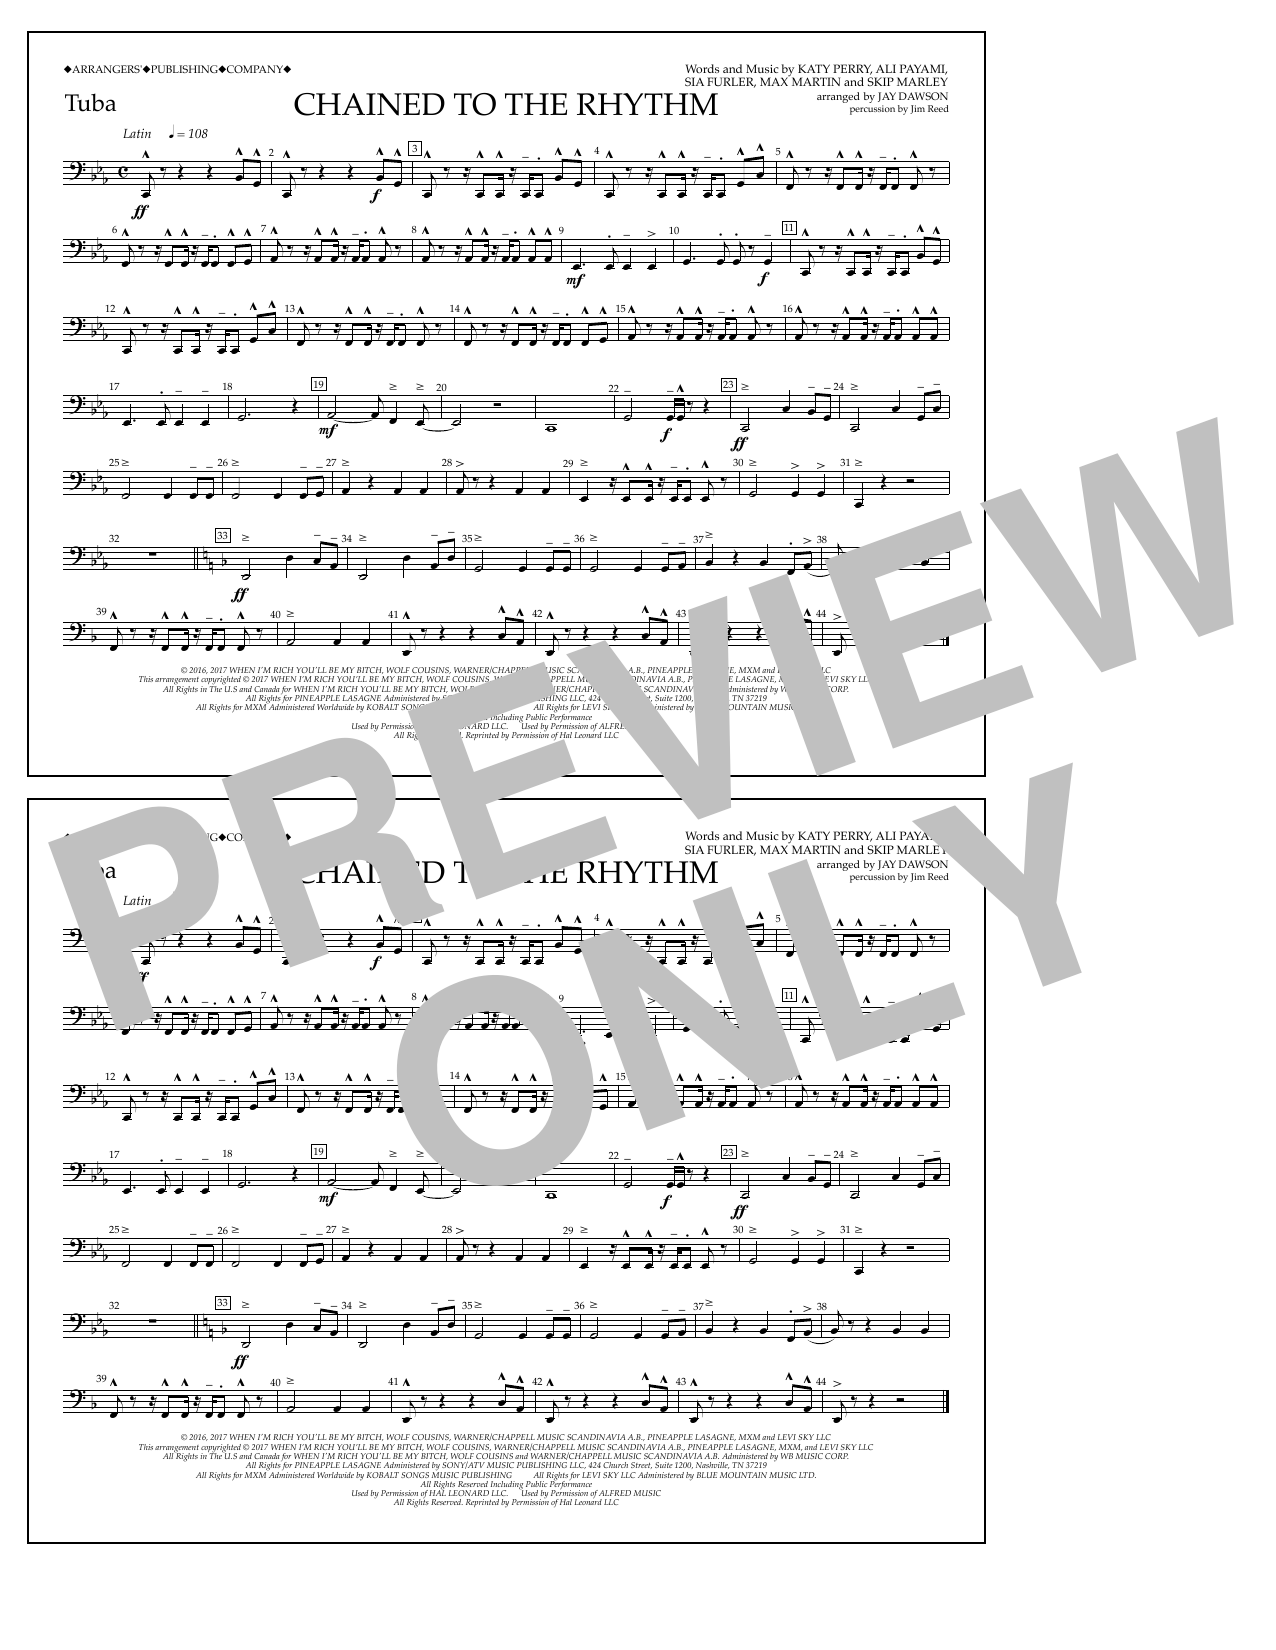 Chained to the Rhythm - Tuba Sheet Music